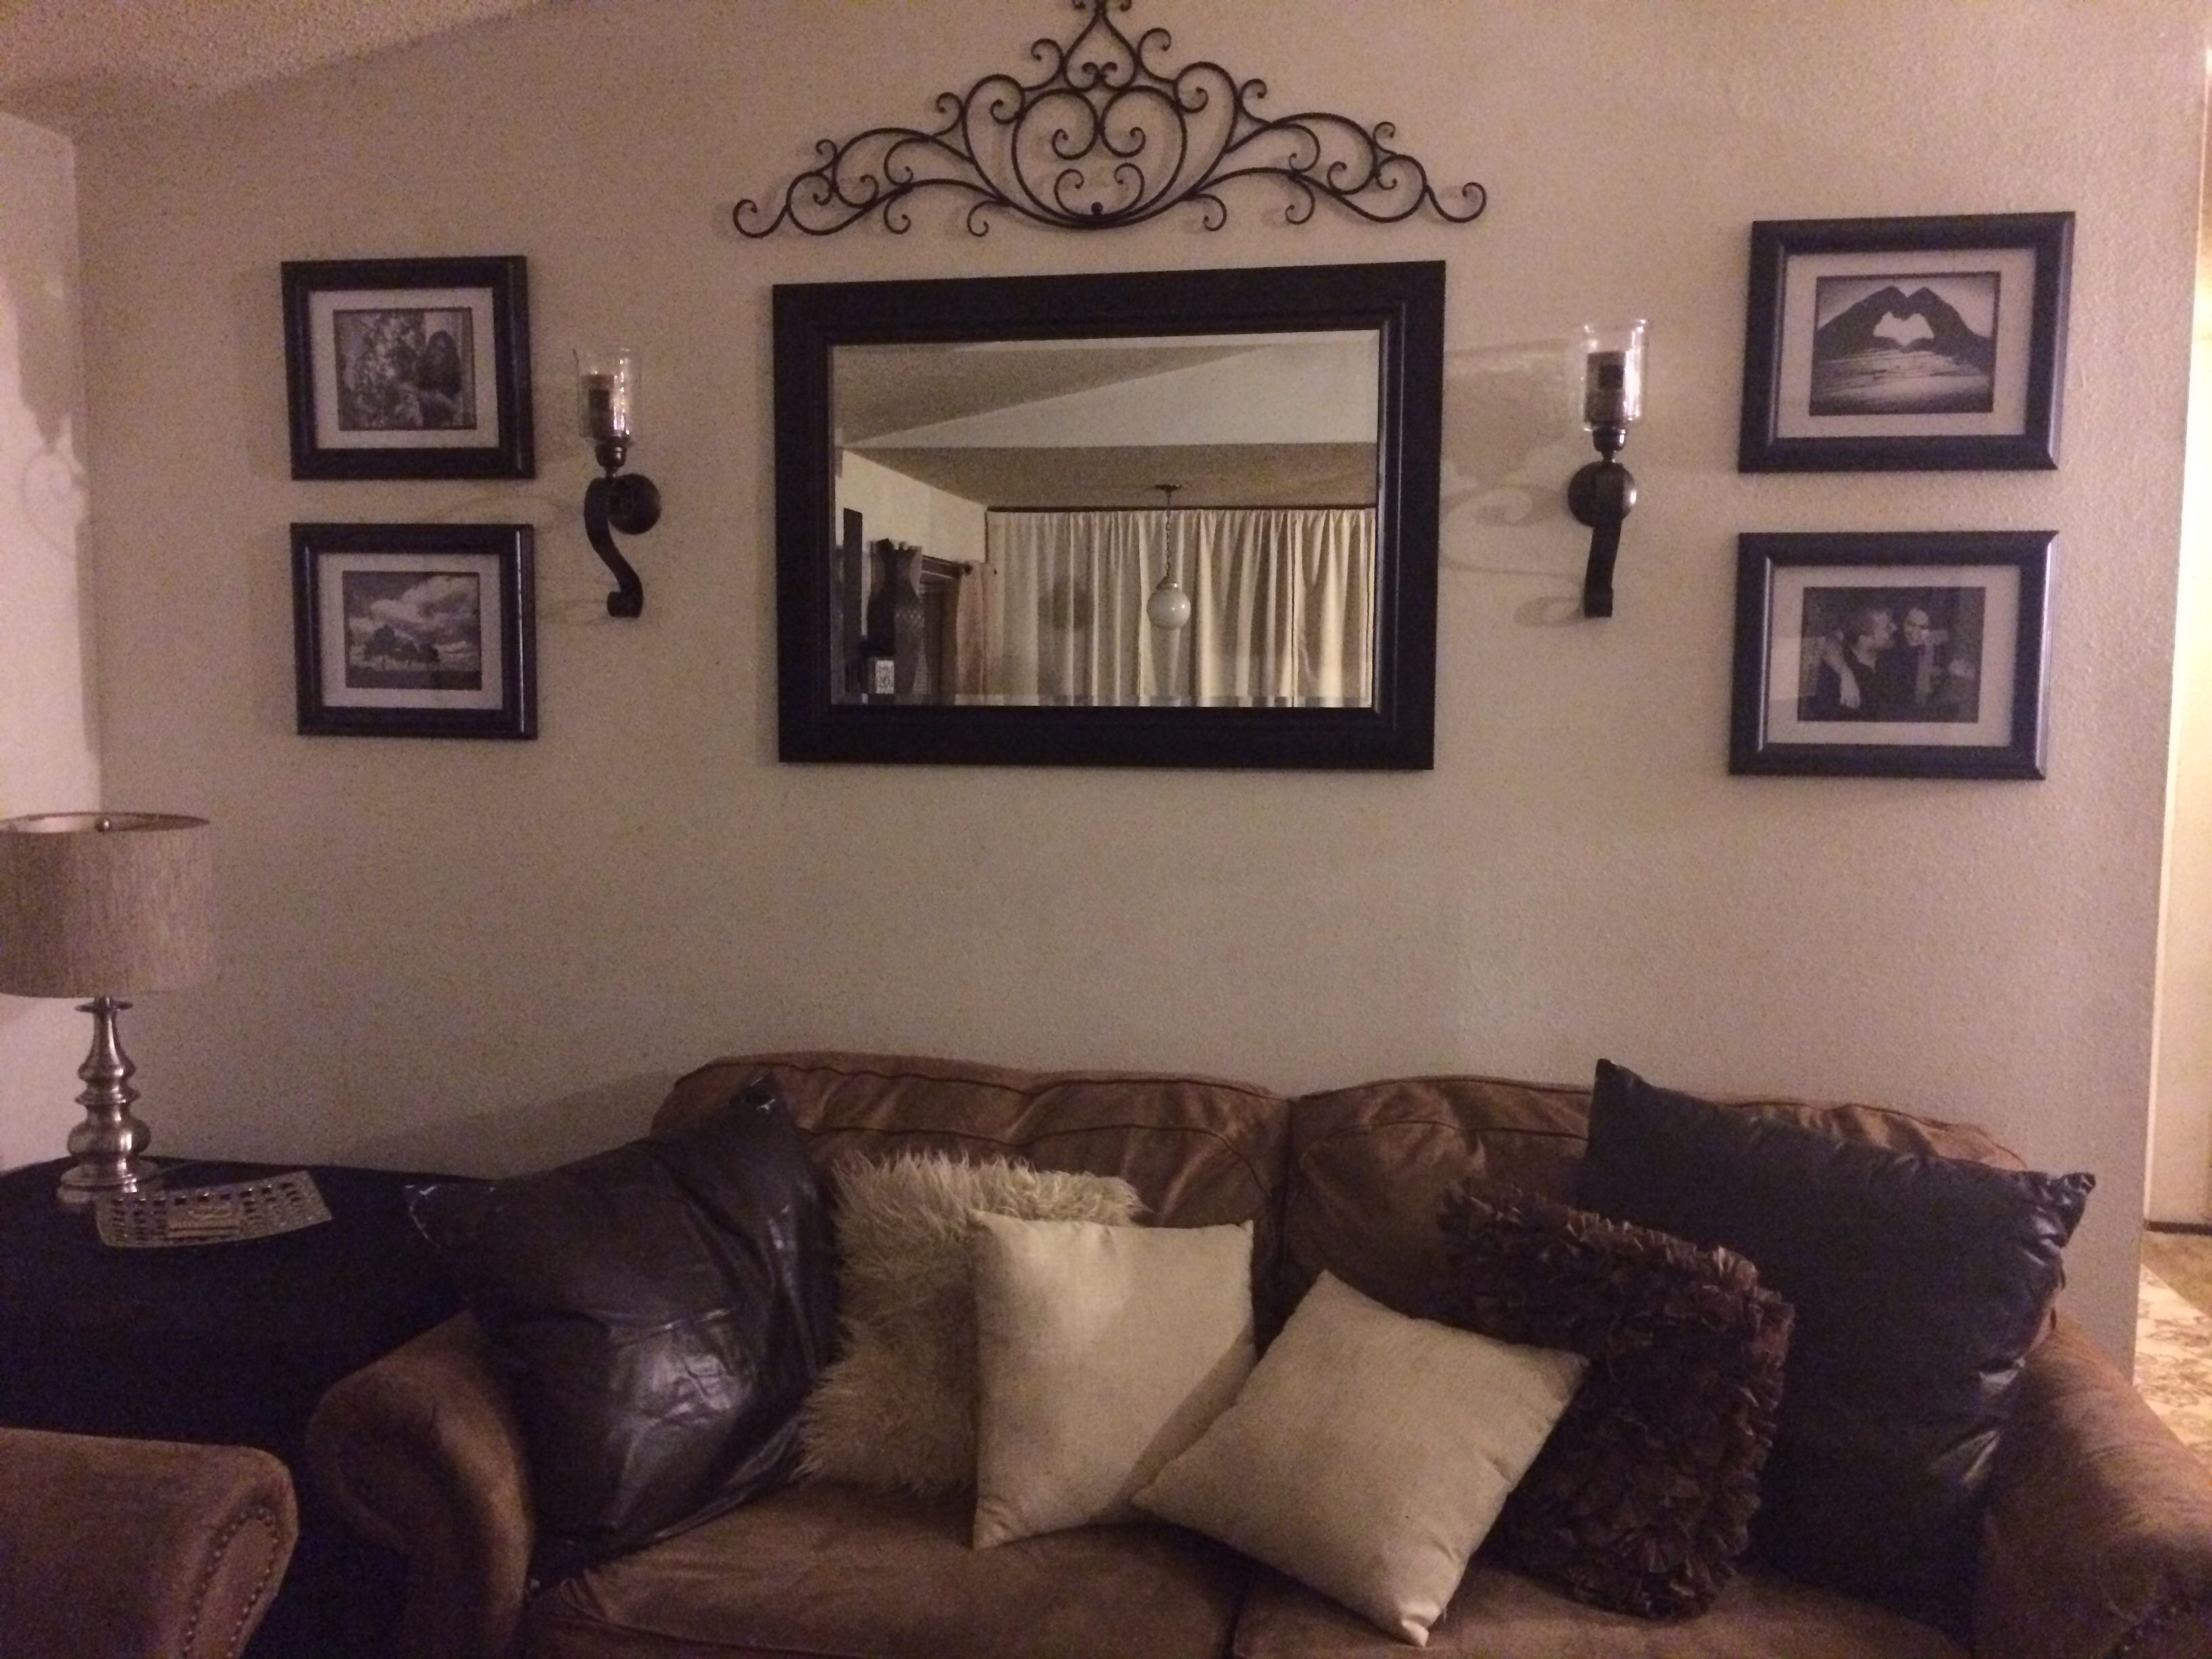 Wall Decor For Behind Couch : Behind couch wall in living room mirror frame sconces